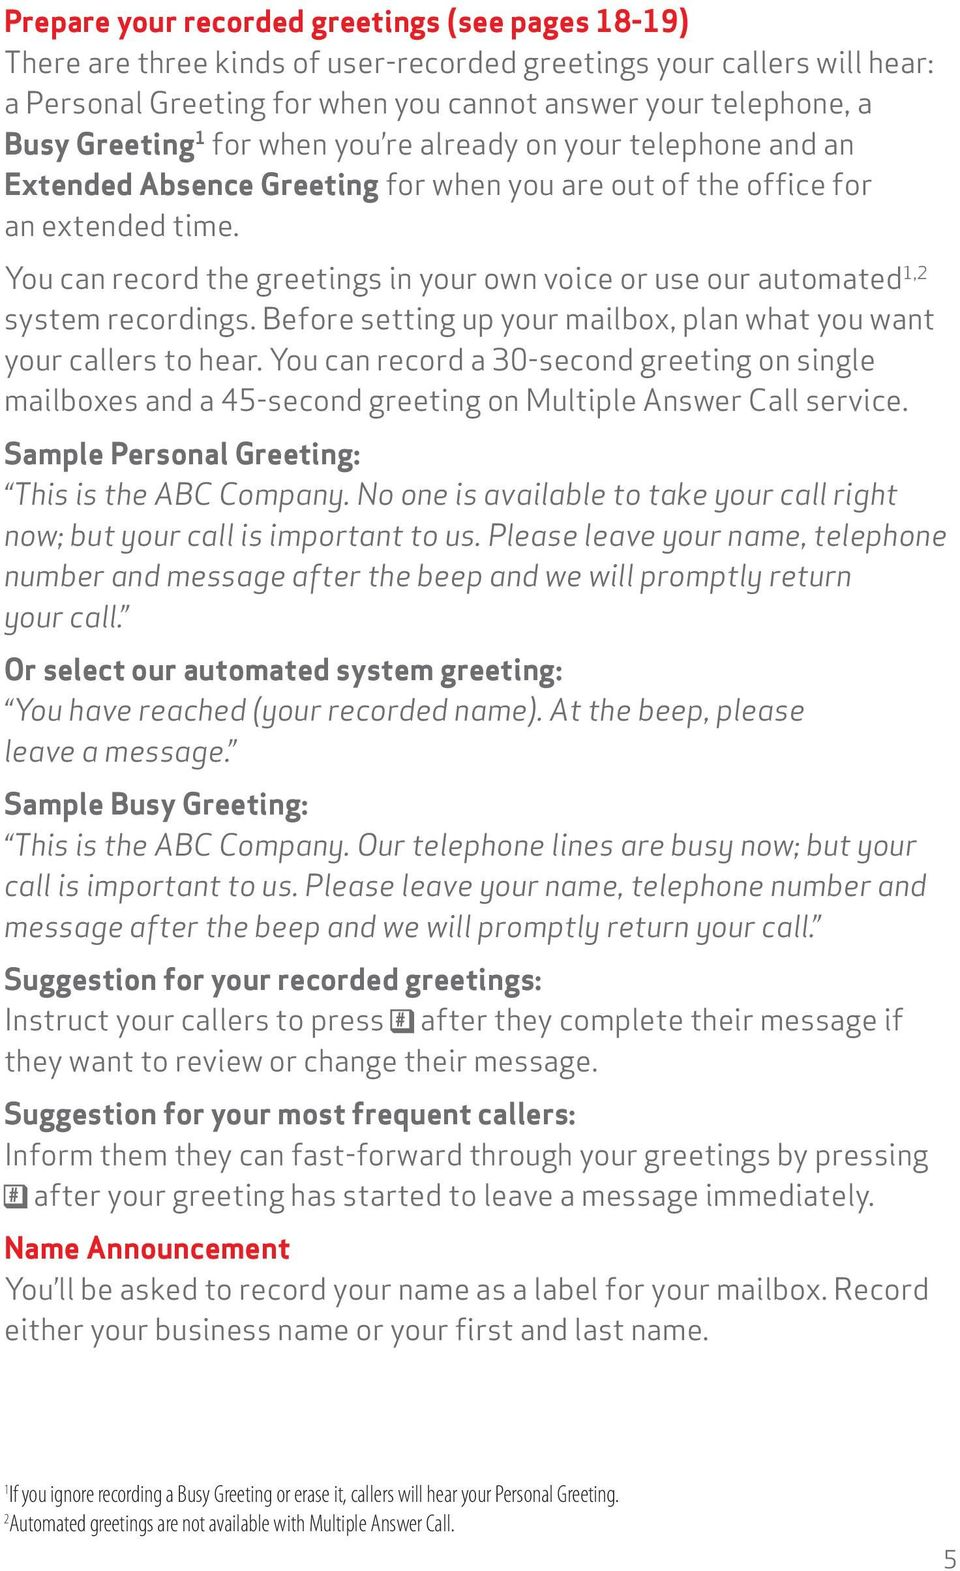 You can record the greetings in your own voice or use our automated 1,2 system recordings. Before setting up your mailbox, plan what you want your callers to hear.